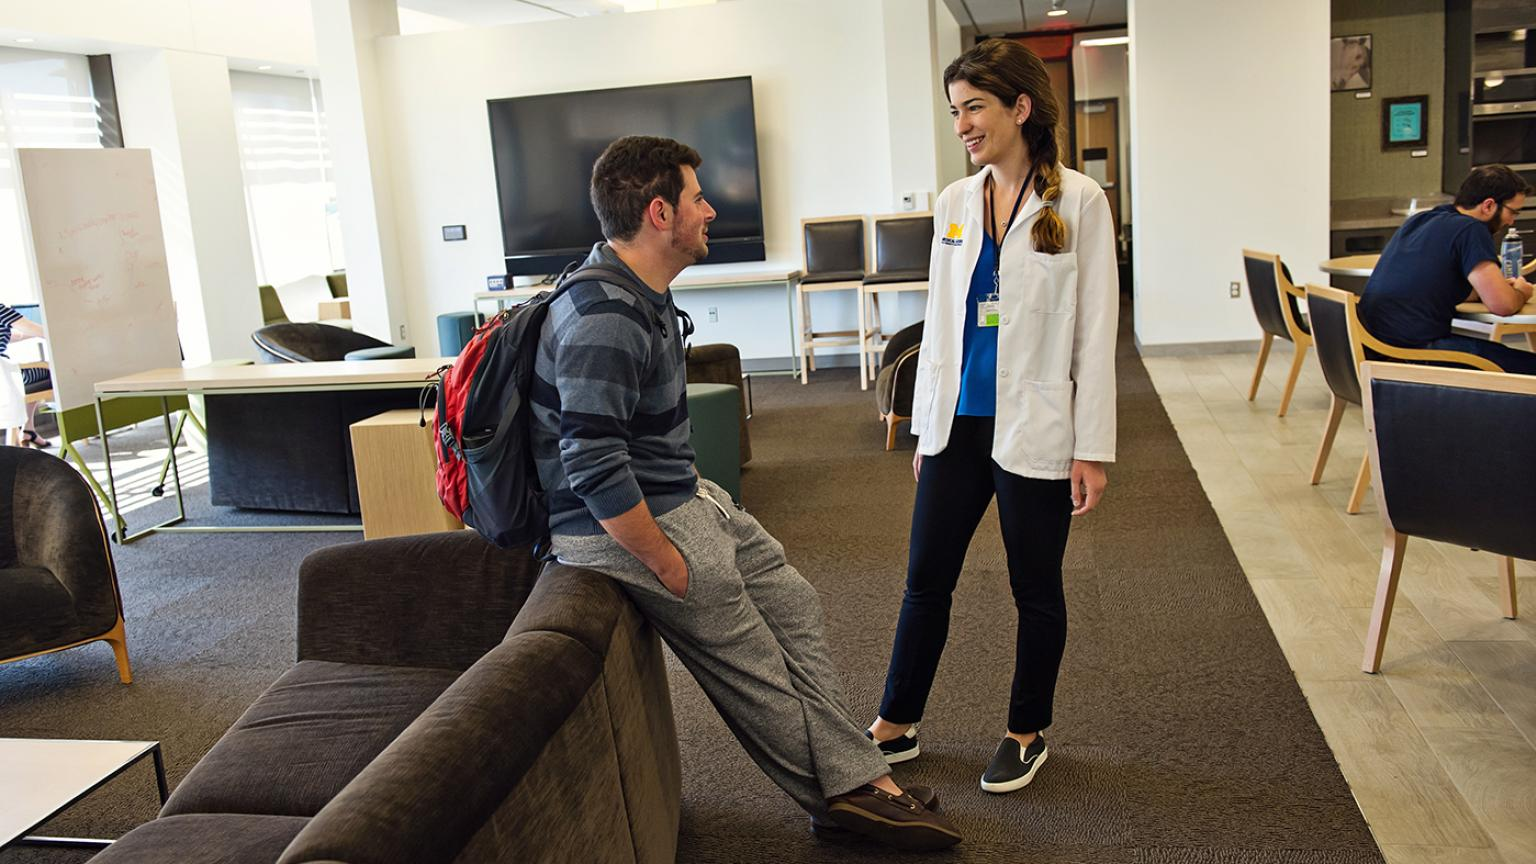 Two medical students having a conversation in the lounge, one is wearing a white coat and one is leaning against a couch